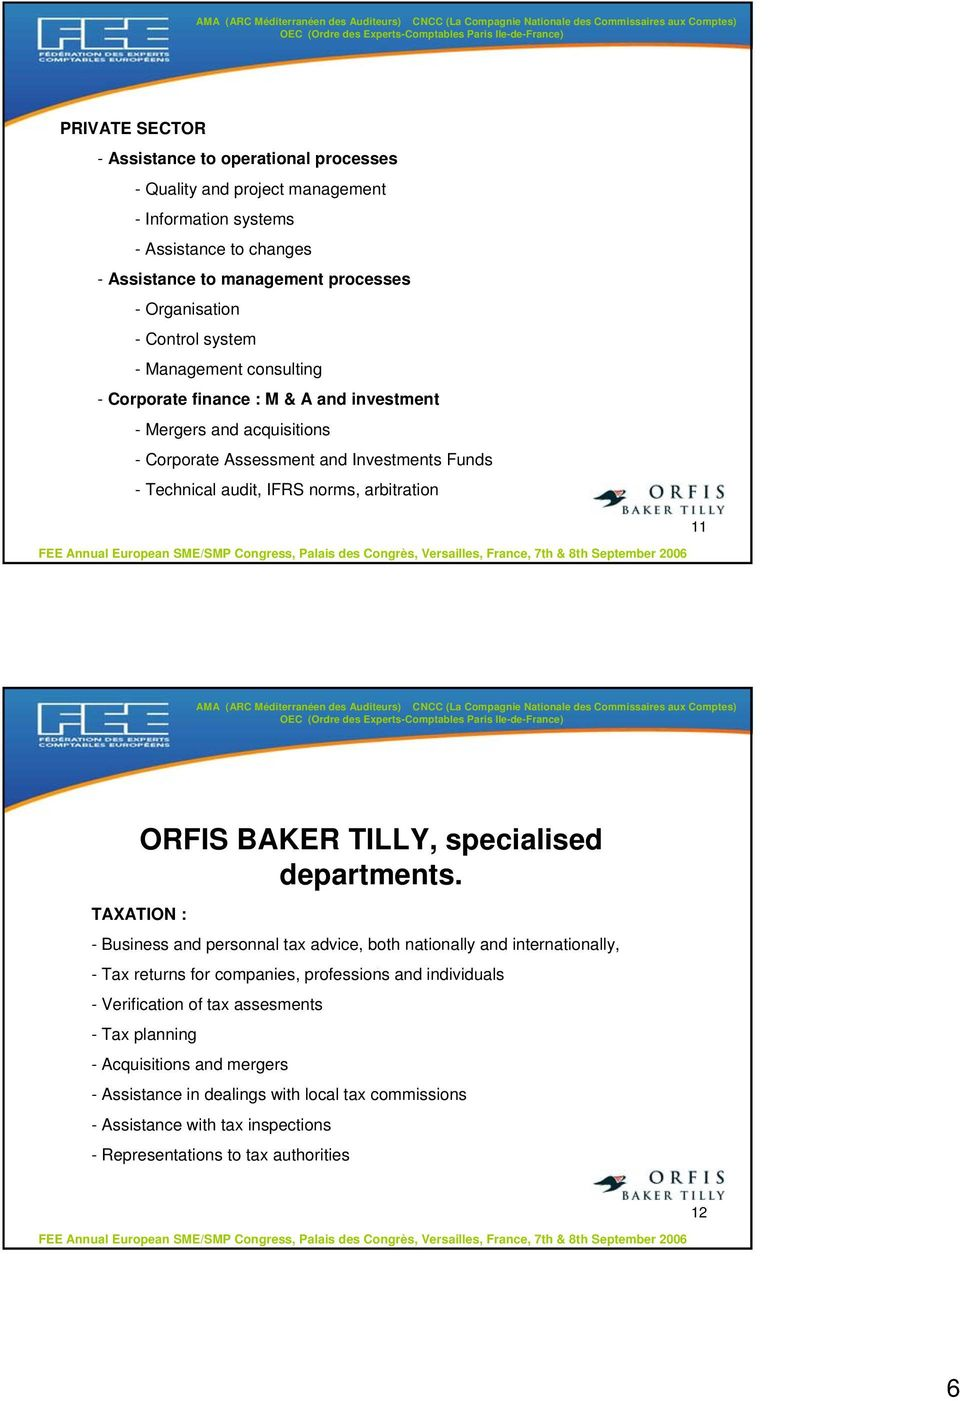 ORFIS BAKER TILLY, specialised departments.